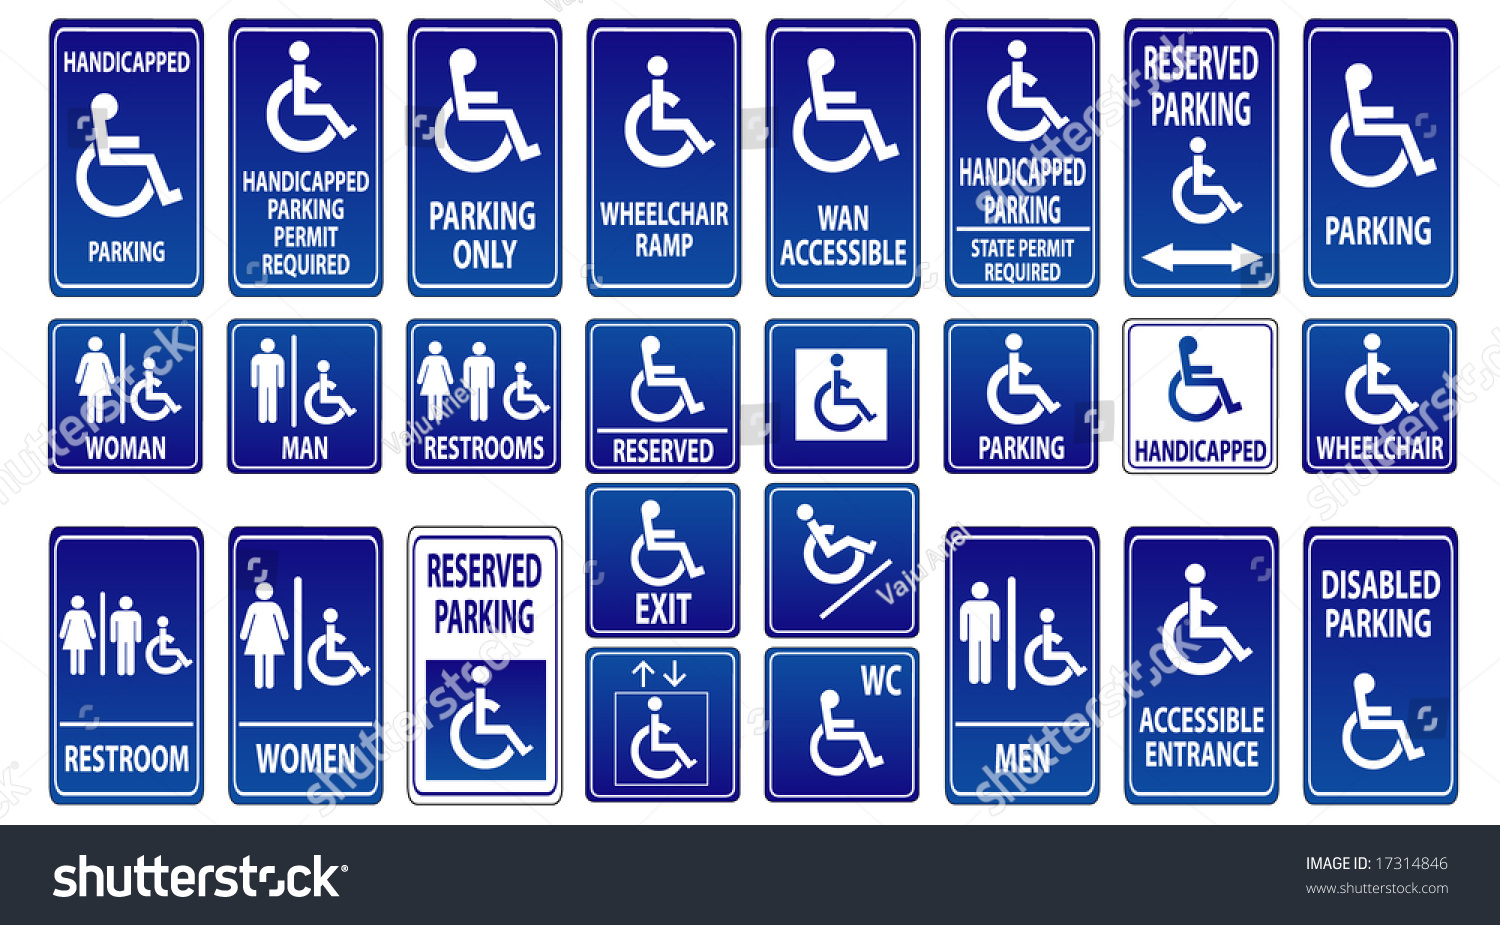 Wcdisabledhandicapped Sign Vector Pack Blue Version Stock